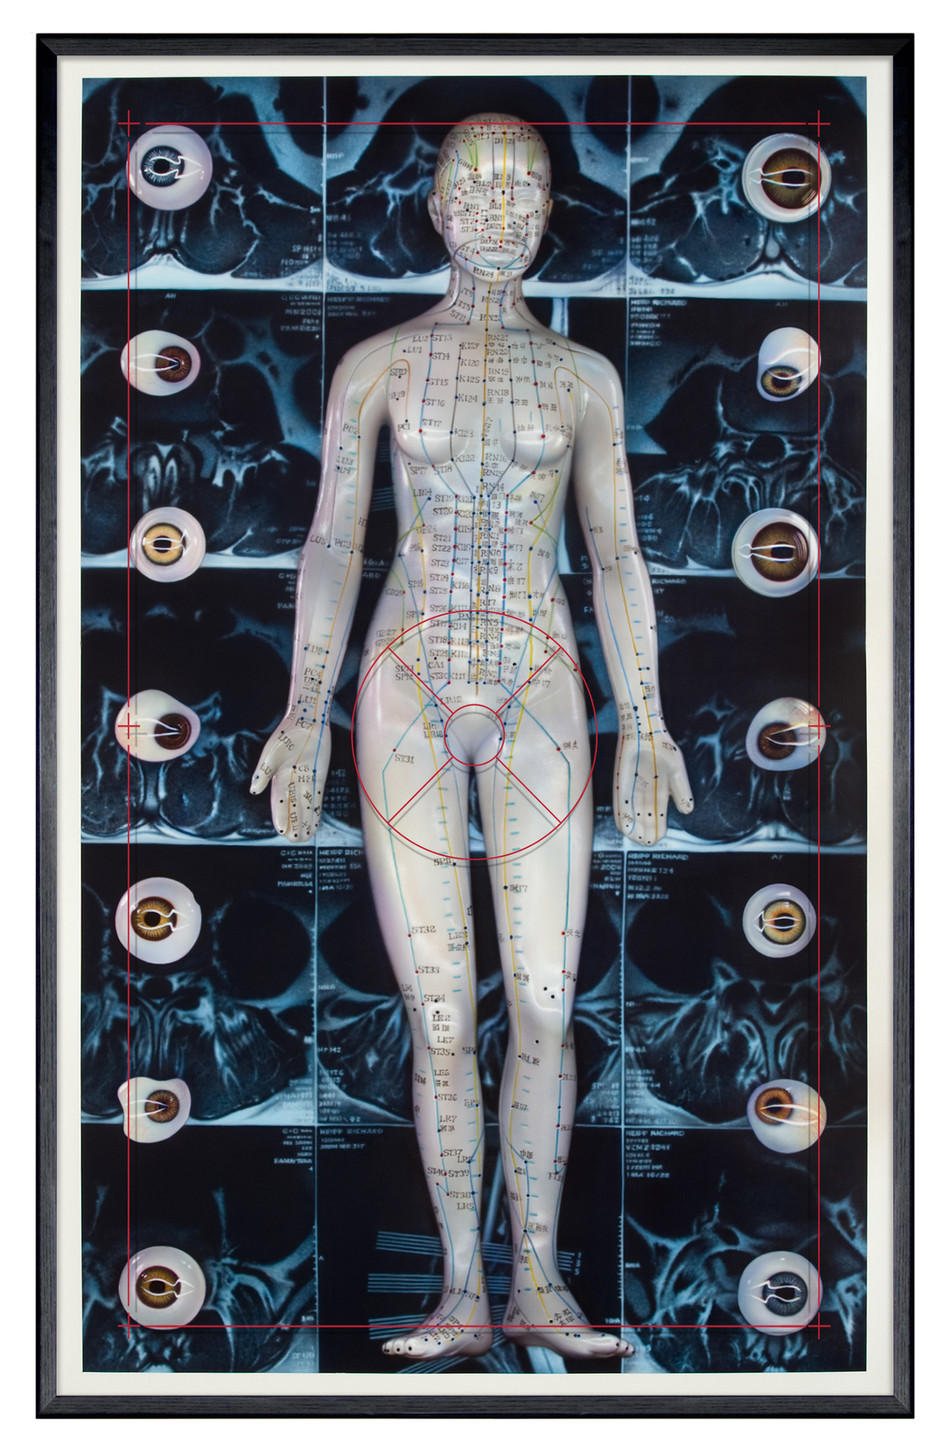 Visible Anatomy: Scanning Stylostixis + Self Portrait, 2014